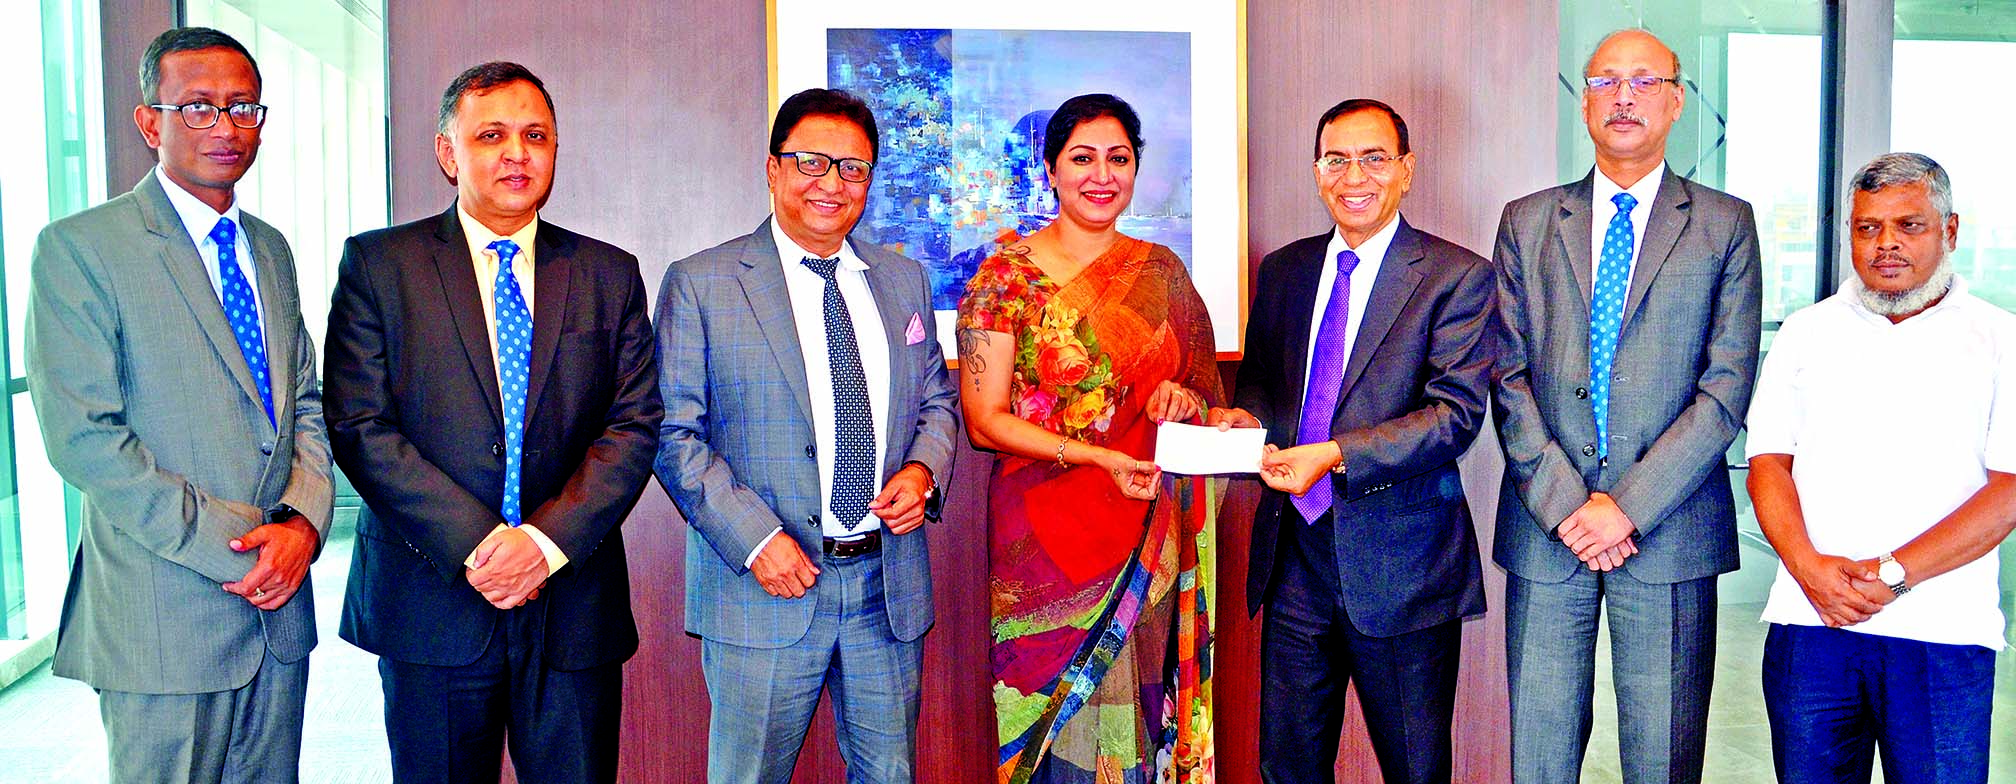 M. Shahidul Islam, Managing Director of Shahjalal Islami Bank Limited, handing over a cheque to Sajida Rahman Danny, President of Parents Forum for Differently Able (PFDA), at the bank's head office in the city on Tuesday. PFDA is mainly a non-government organization, working for eradicating Autism, Cerebral Palsy Down syndrome as well as intellectual & Neurological Disabilities from the Country. Top officials from both the sides were also present.